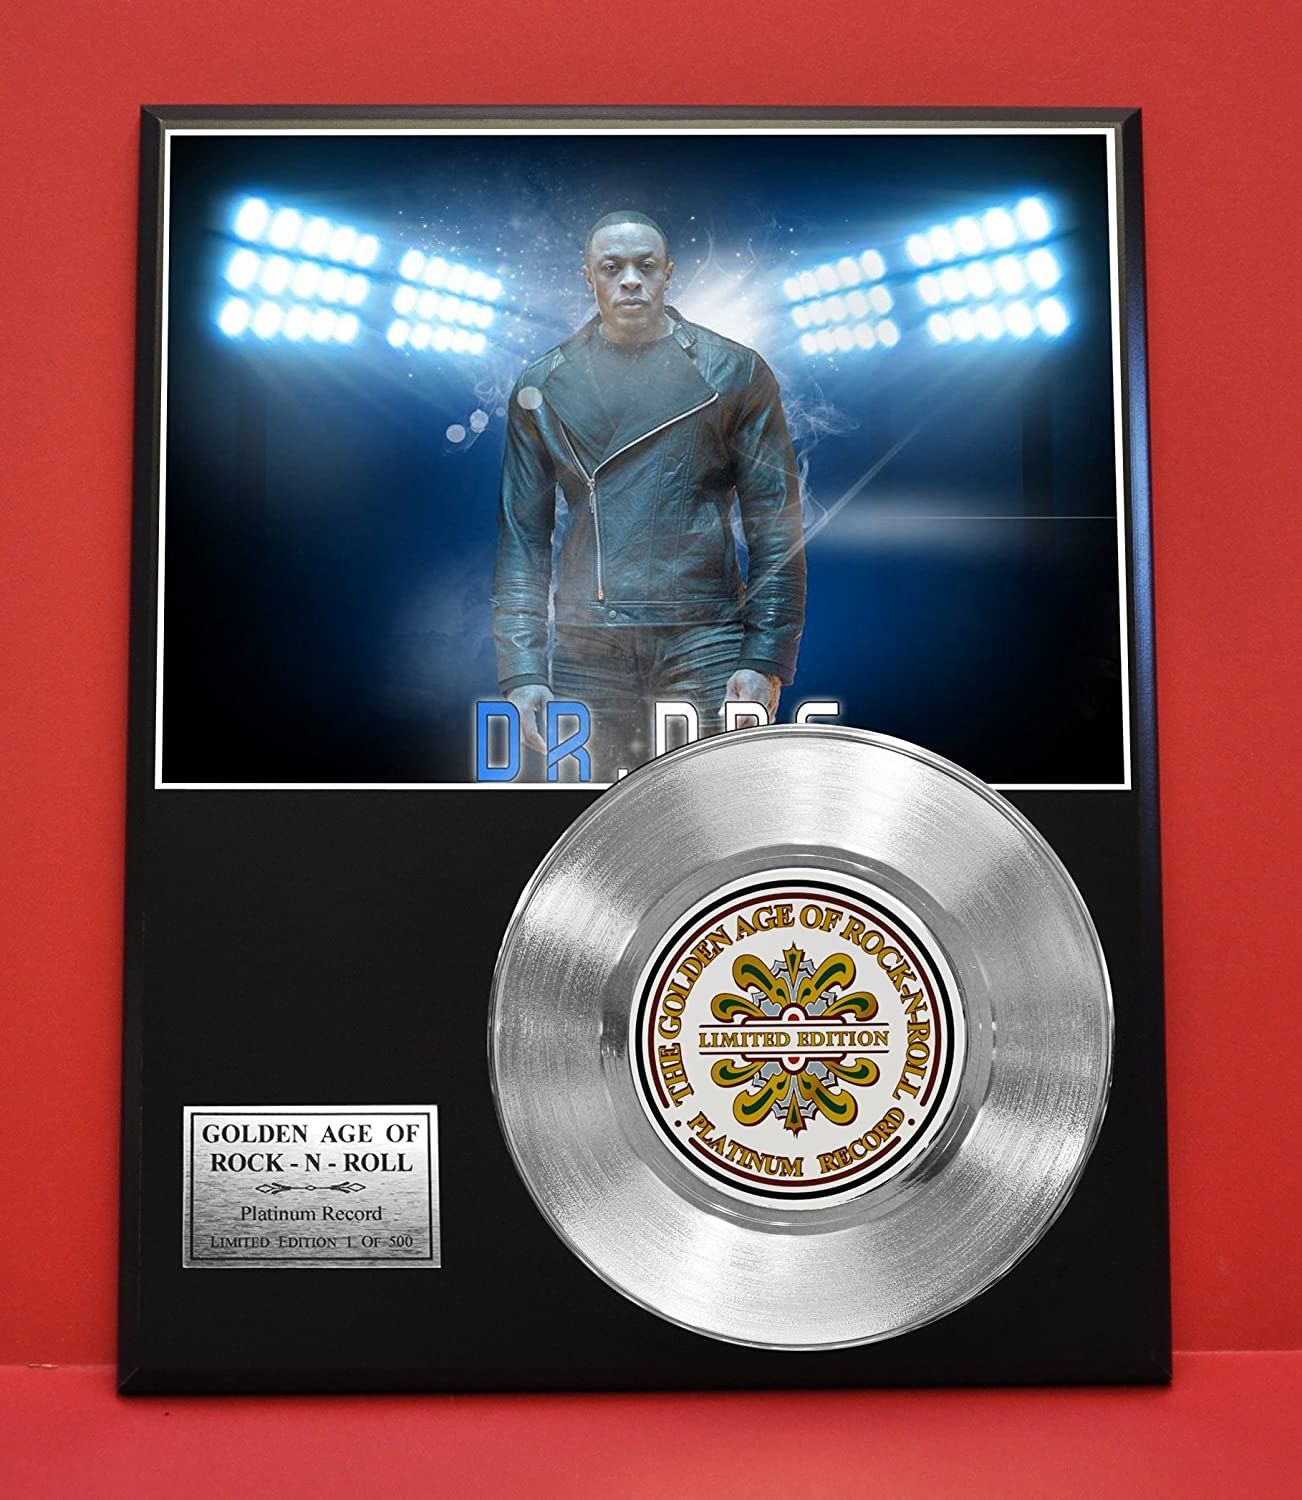 Dr Dre Limited Edition Platinum Record Display - Award Quality Plaque - Music Memorabilia - Gold Record Outlet